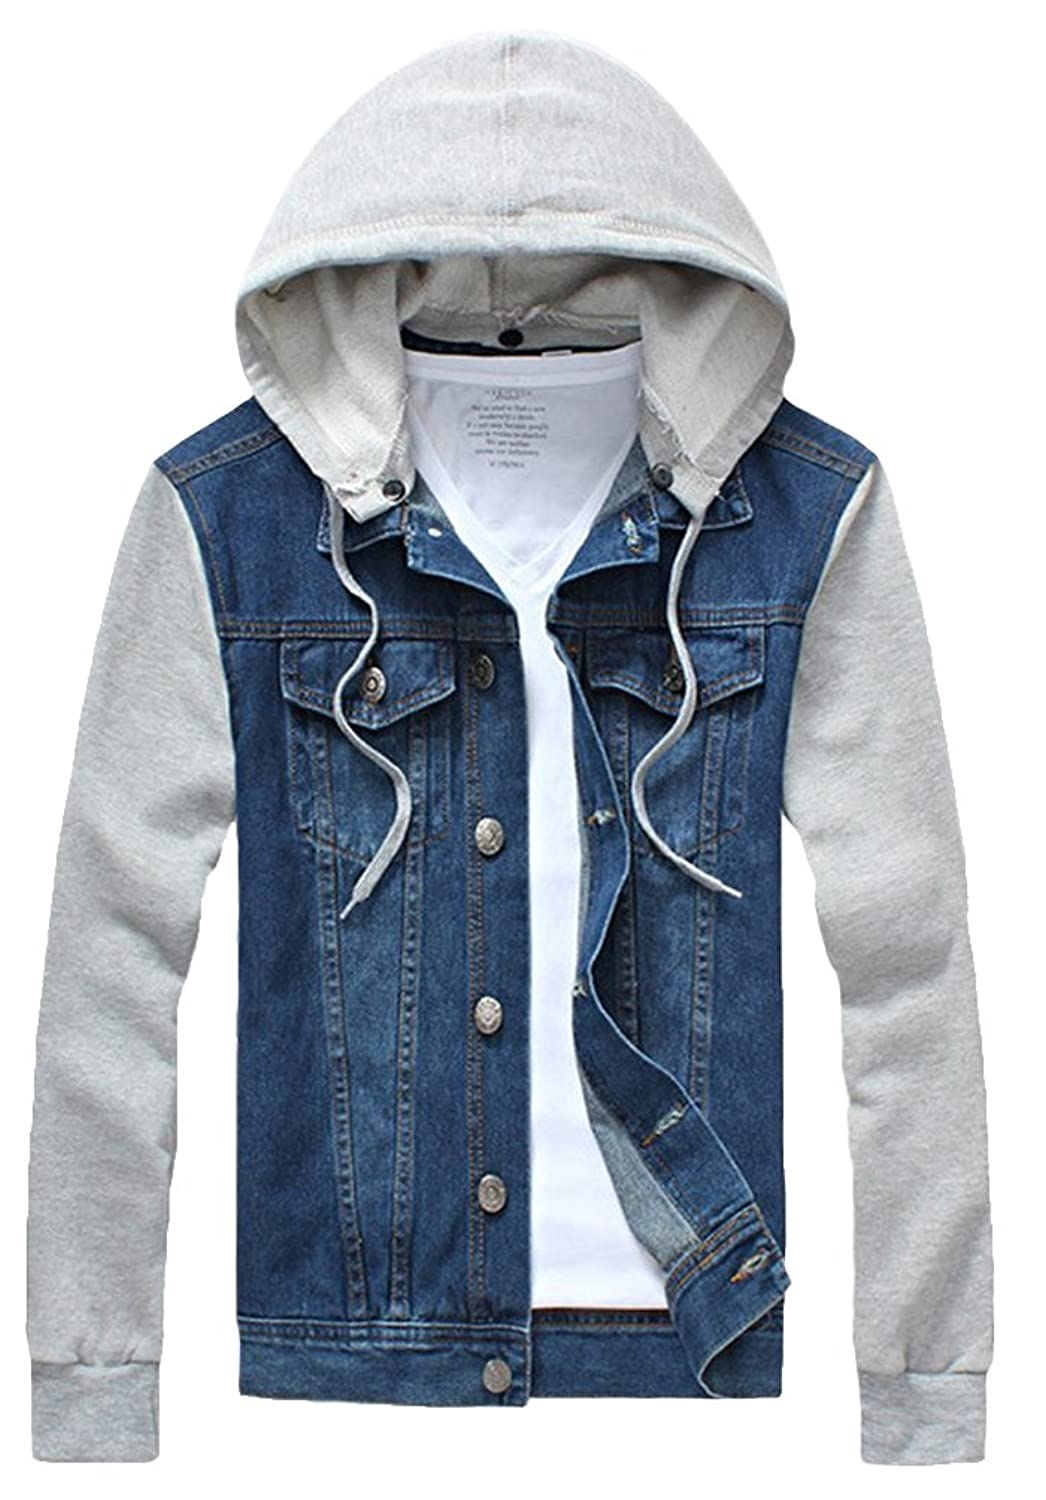 Kelmon Men's Rugged Wear Denim Hoodie Jacket: Amazon.co.uk: Clothing